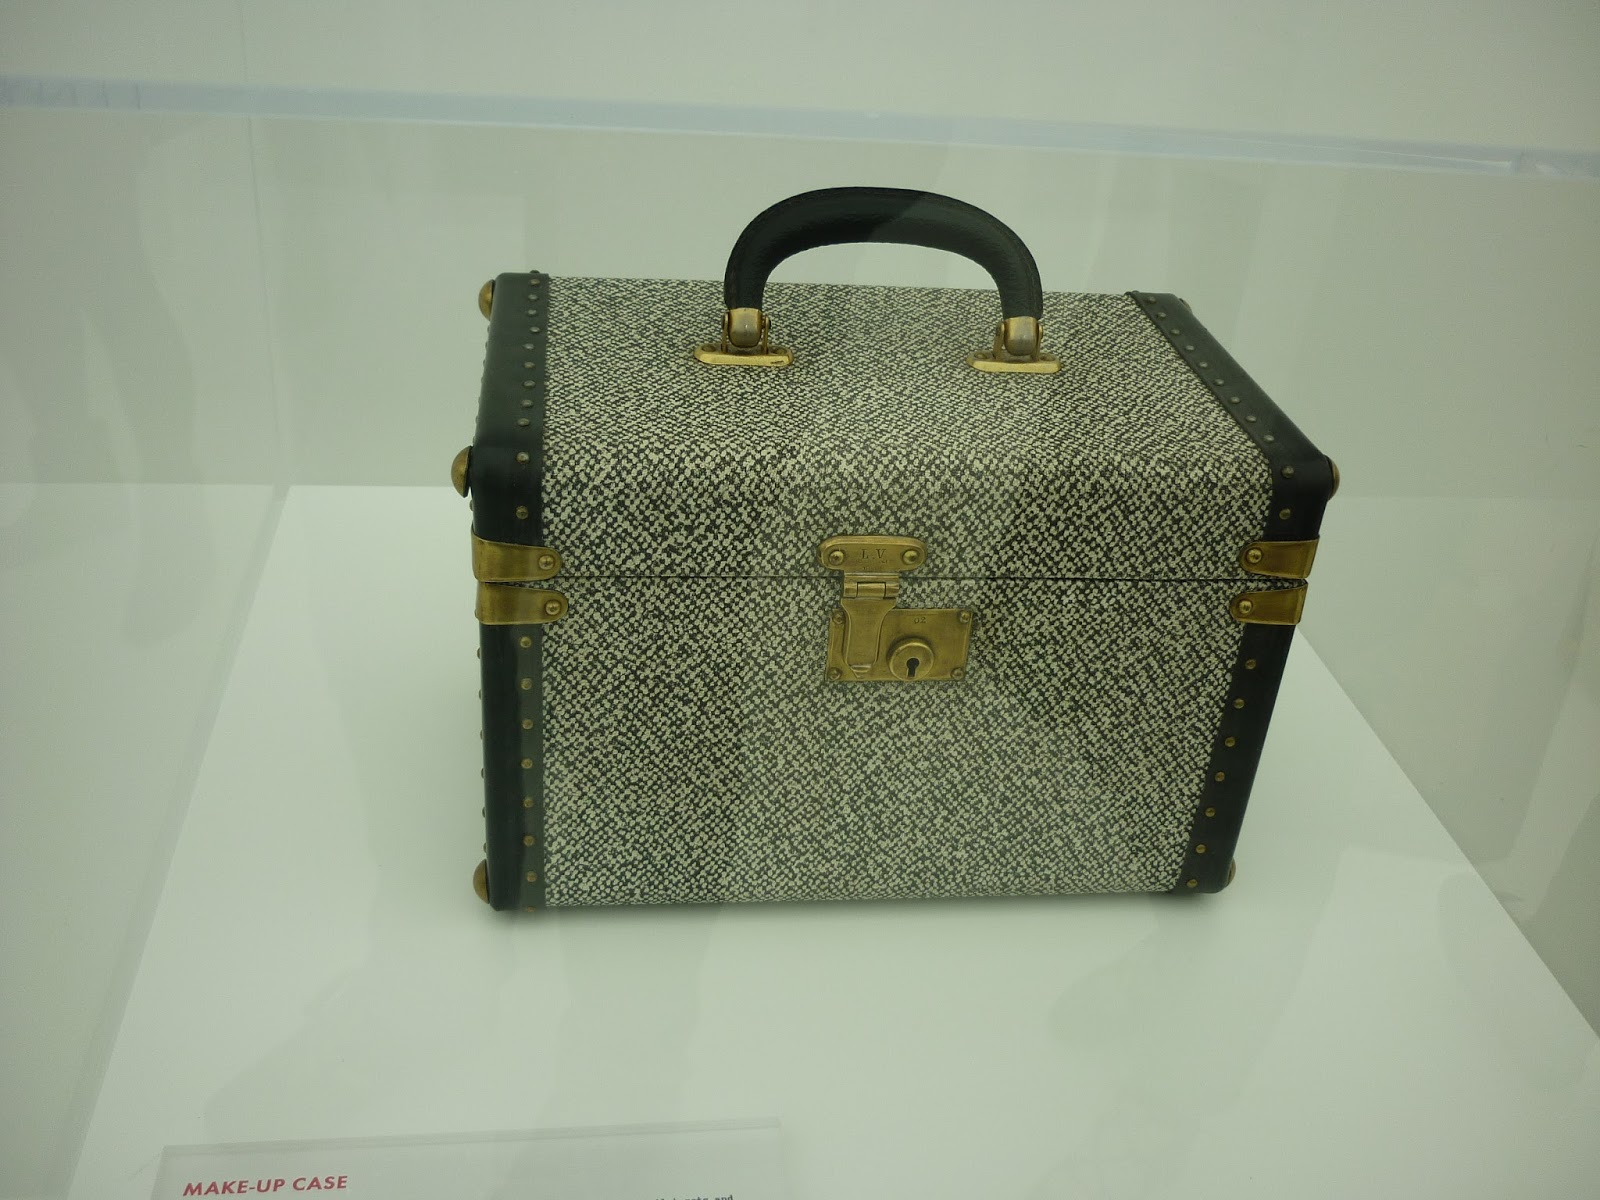 Make Up Case, Louis Vuitton Series 3 Exhibition | Petite Silver Vixen